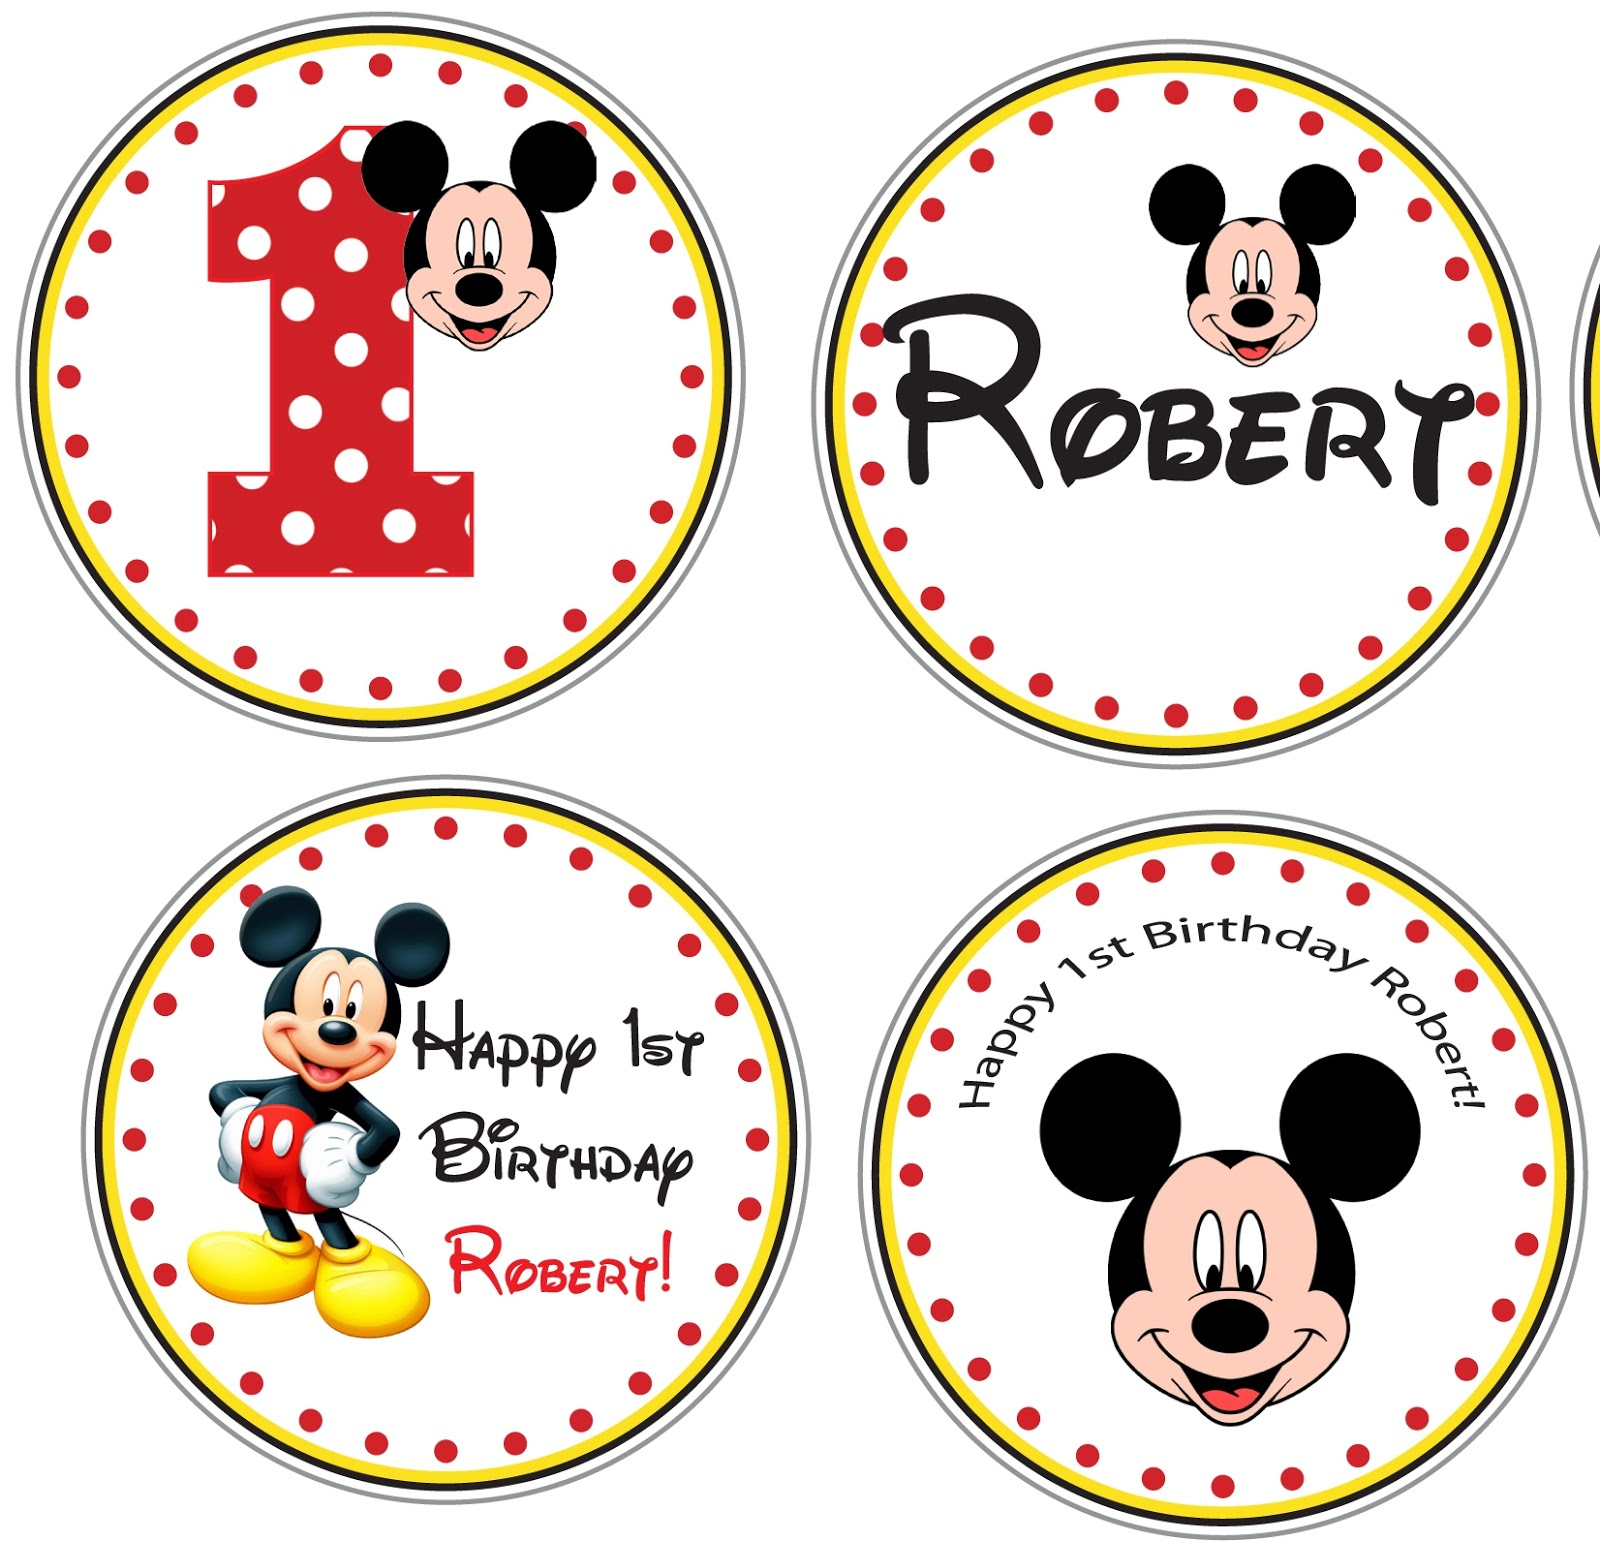 3 Monkeys and More: Mickey Mouse Invite and AccessoriesMickey Mouse Cupcake Toppers